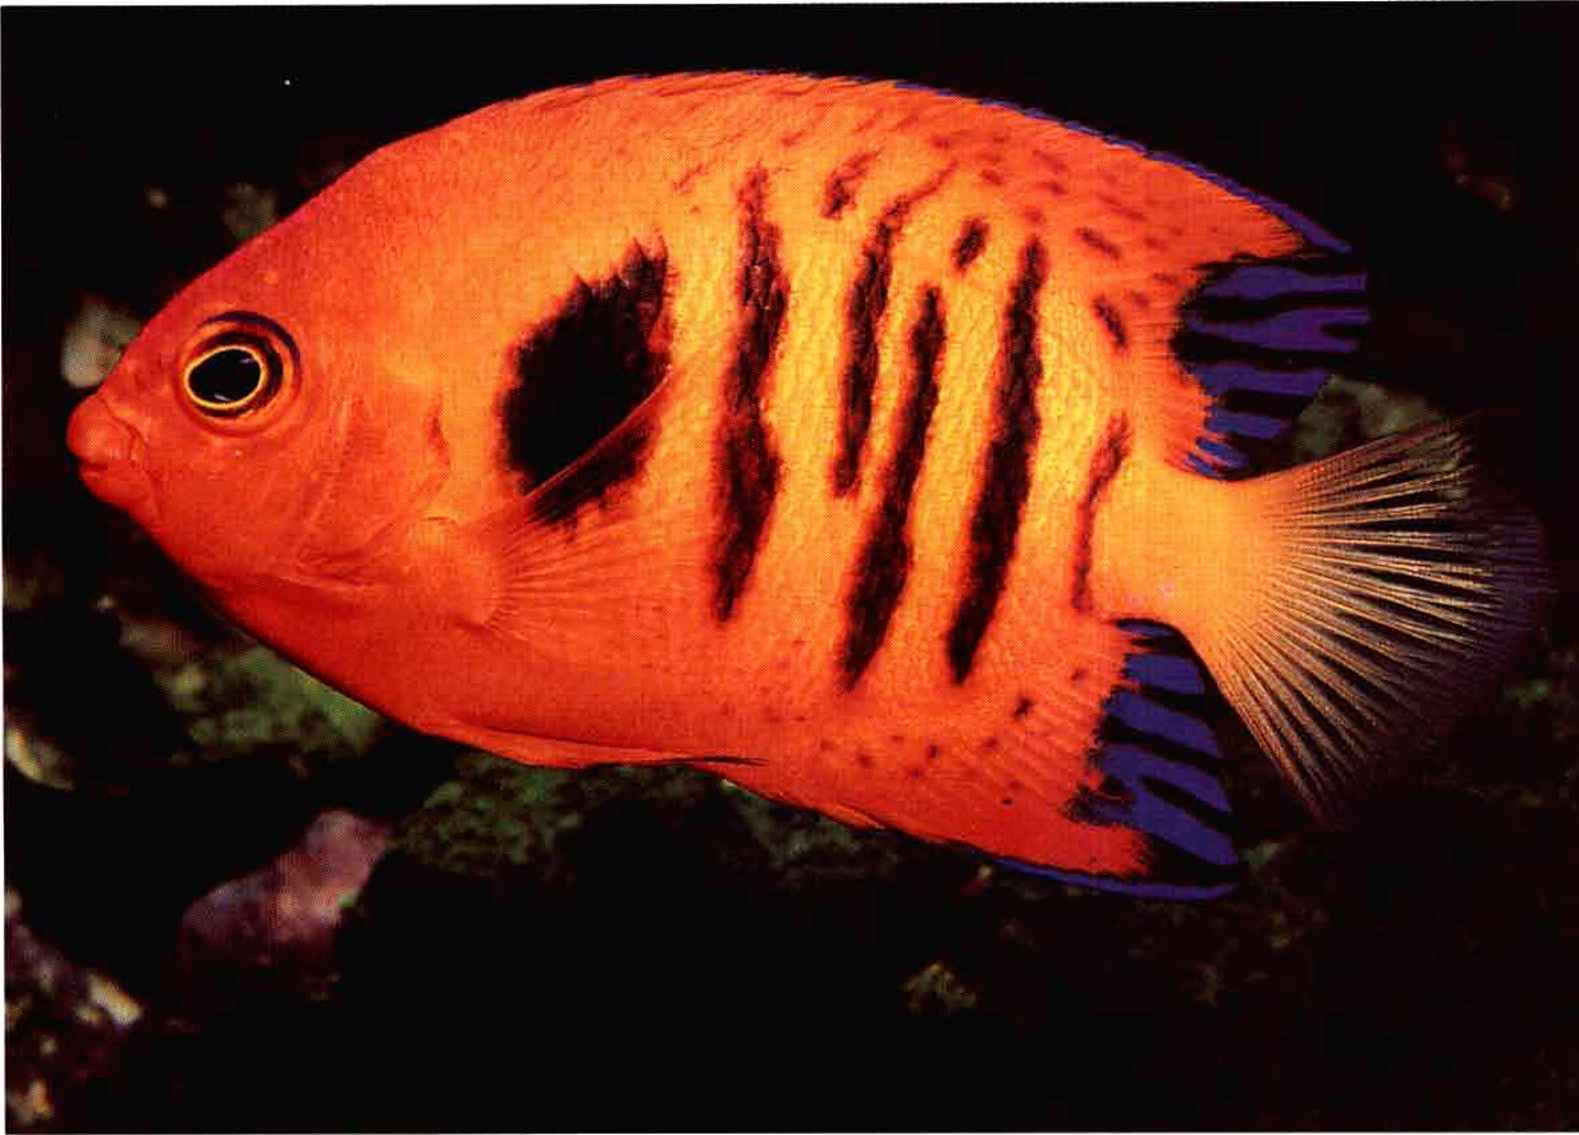 http://www.gibell.com/reef-aquariums/images/4272_118_455-tang-fish ...